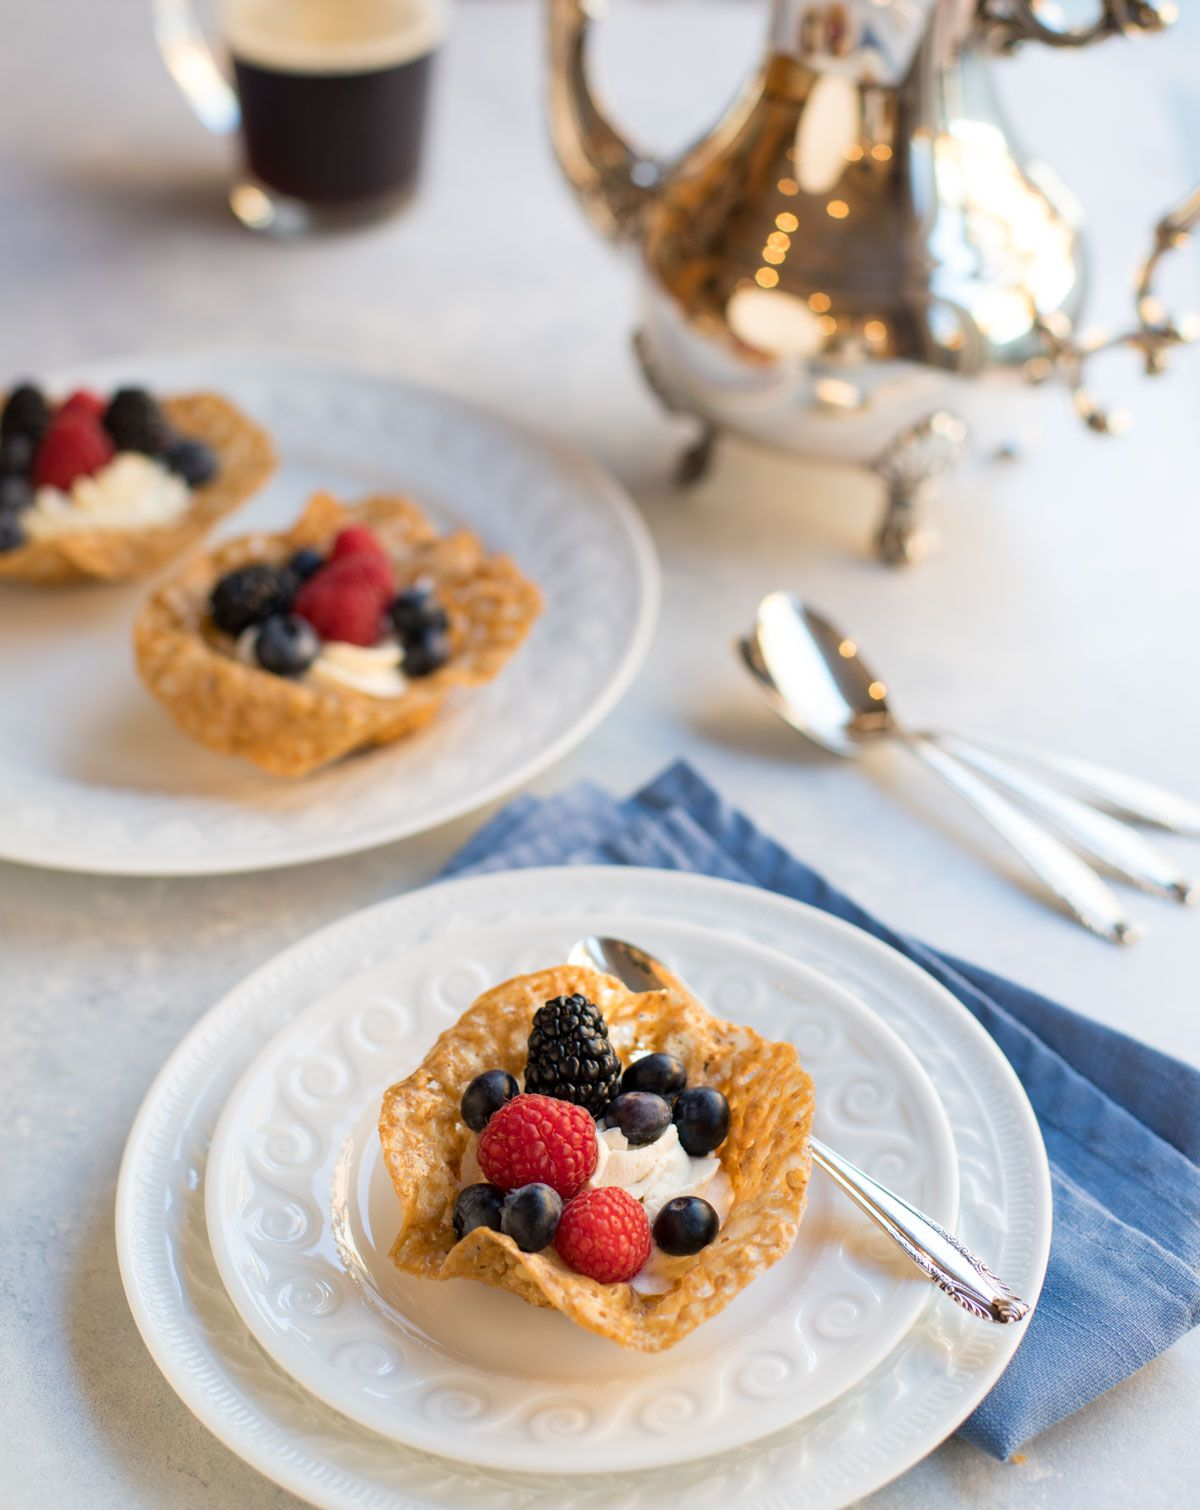 Pecan Cookie Cups with White Chocolate-Rum Mousse Delicate and elegant Pecan Cookie Cups are filled with scrumptious White Chocolate-Rum Mousse and topped with fresh berries - the perfect light and flavorful dish to end a spring or summer meal!